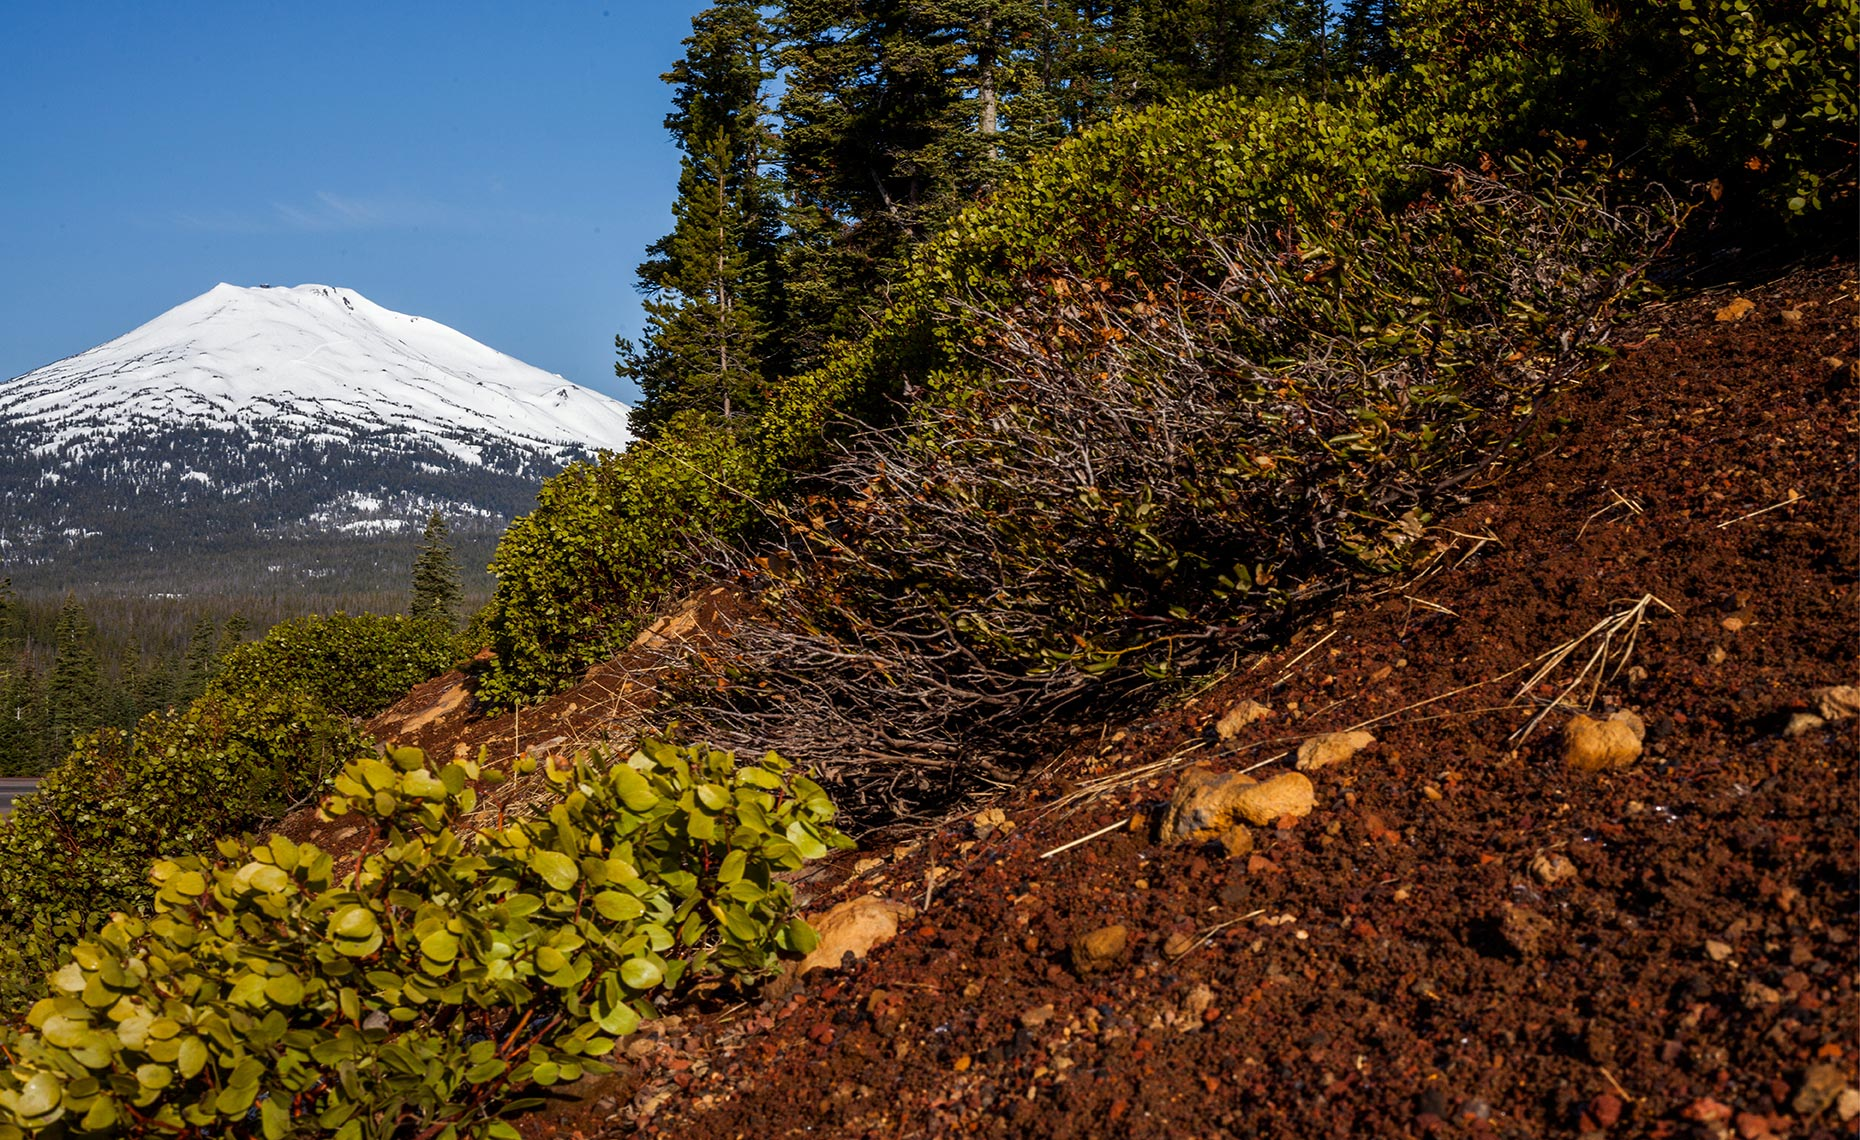 29_Mt_Bachelor_Environment_Landscape_Chris_Wellhausen_Photography.JPG